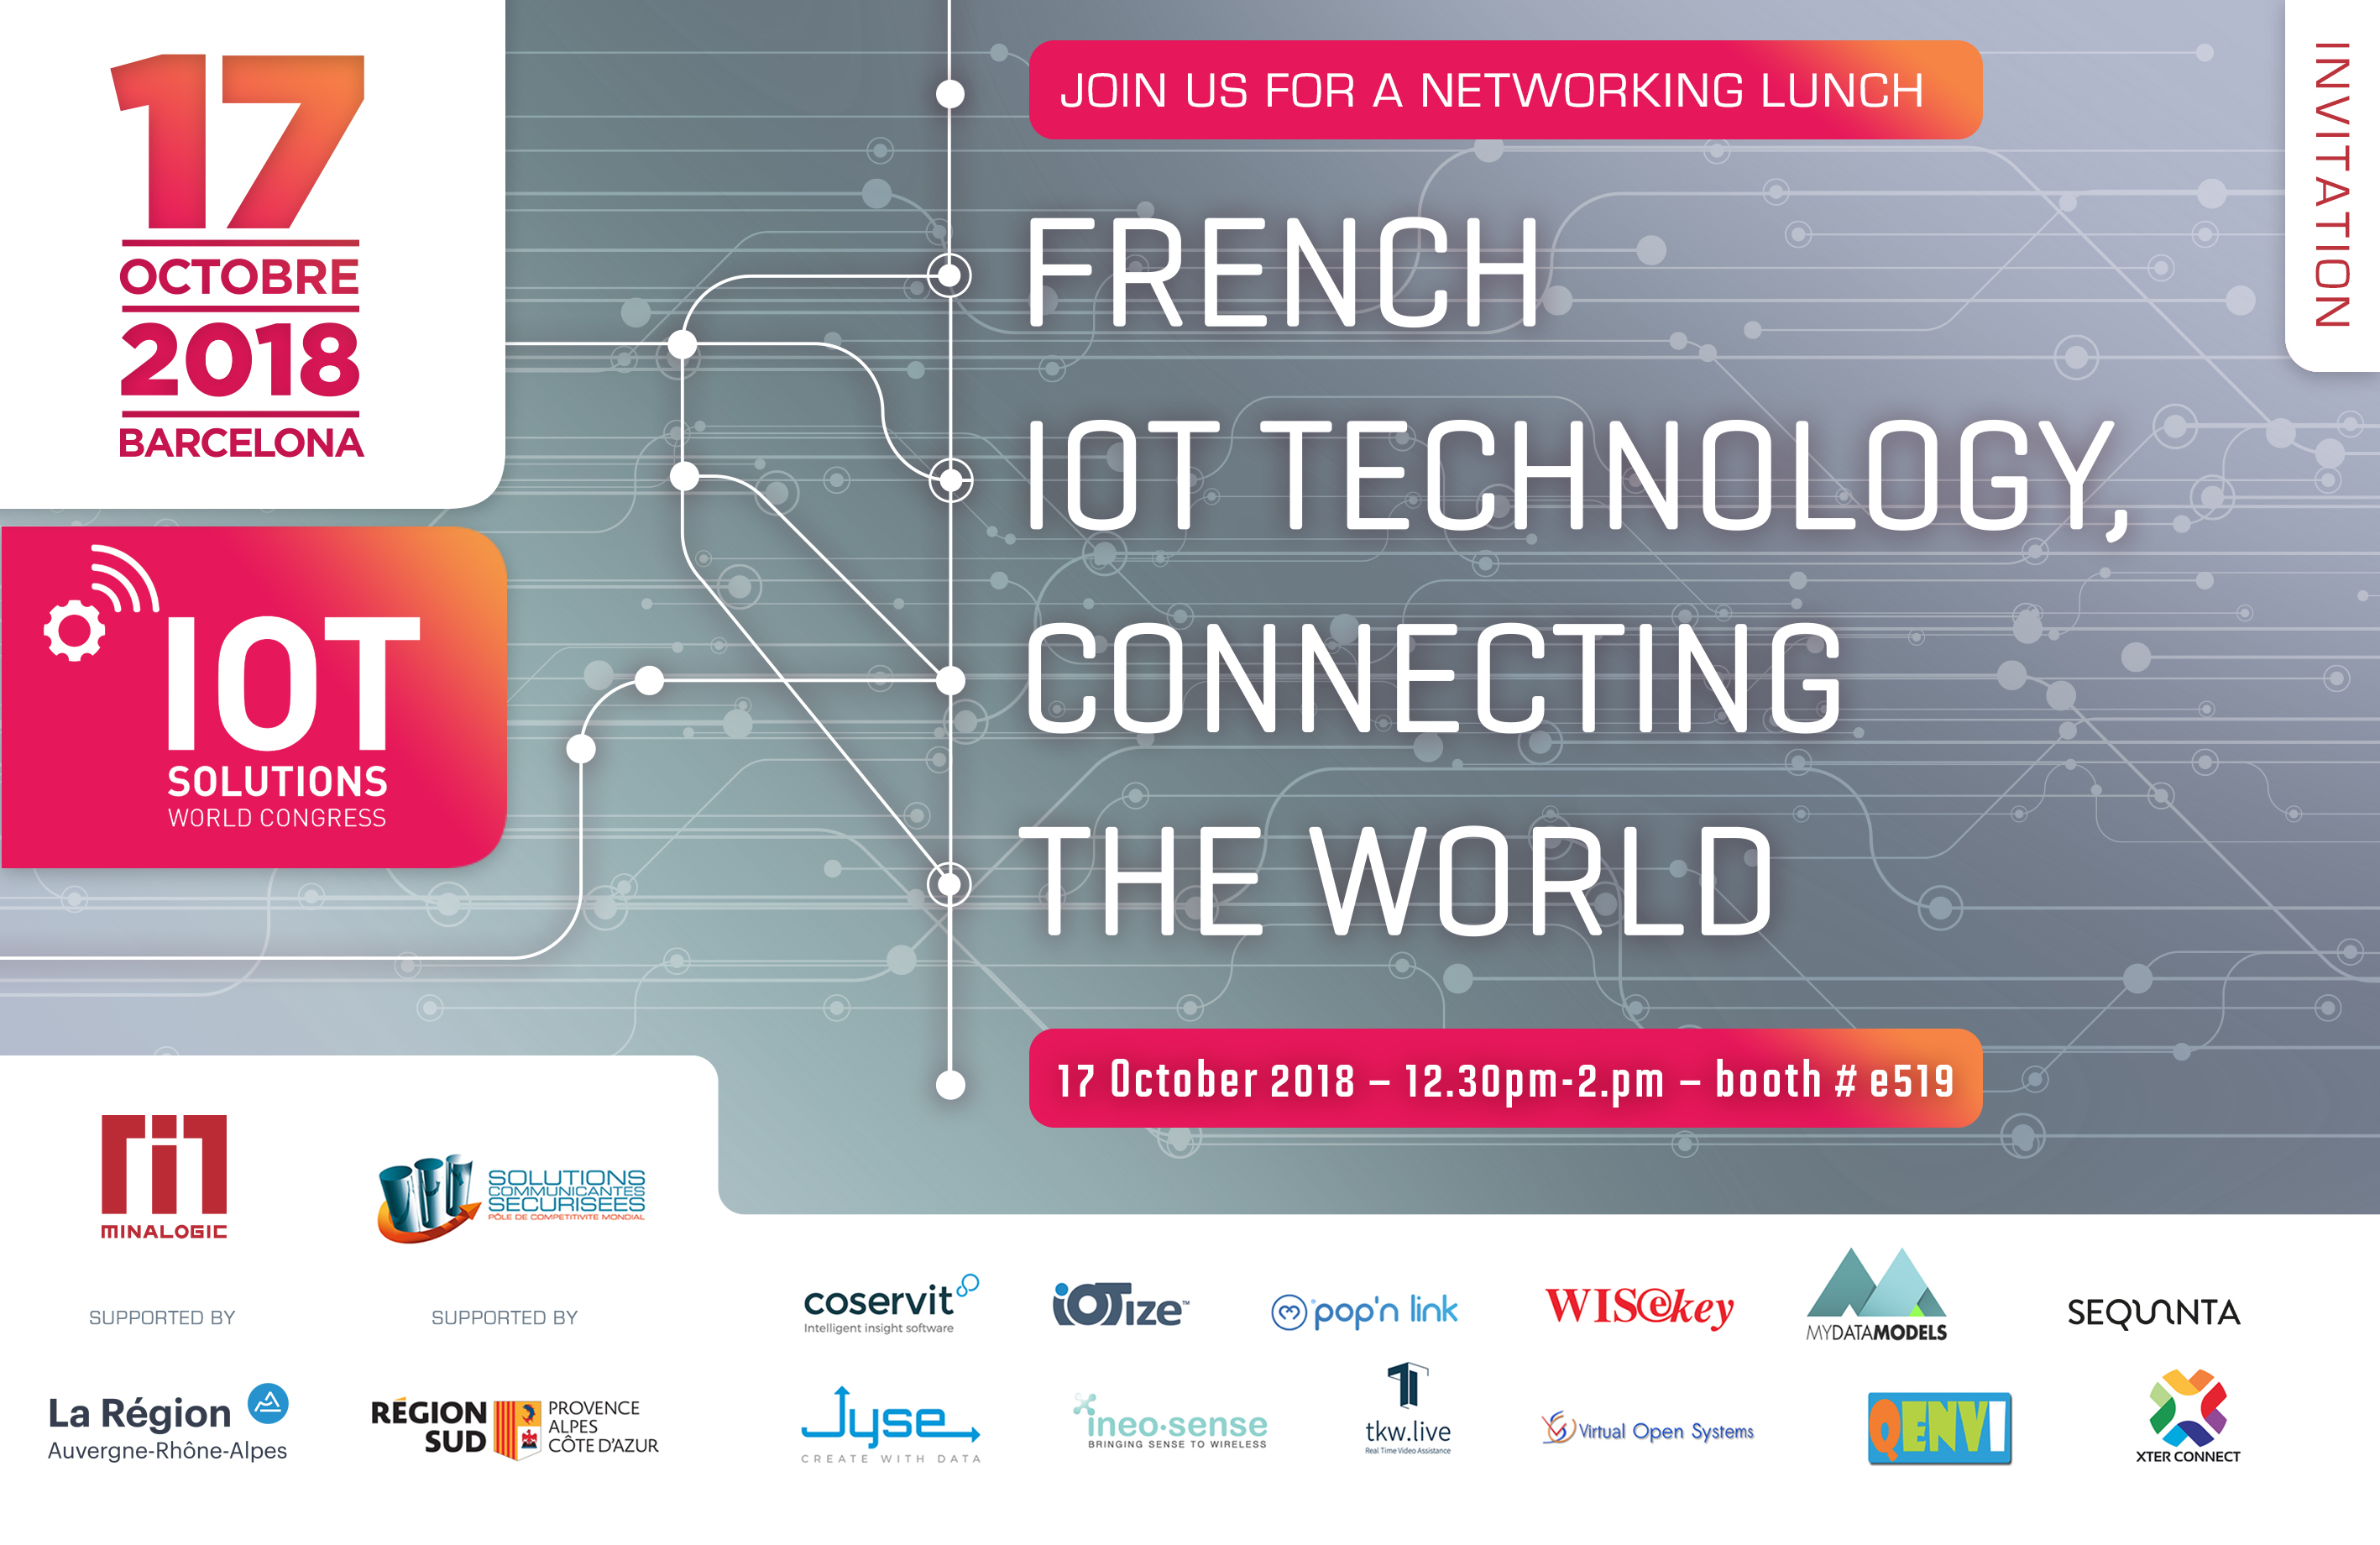 Coservit at IoT Solutions World Congress